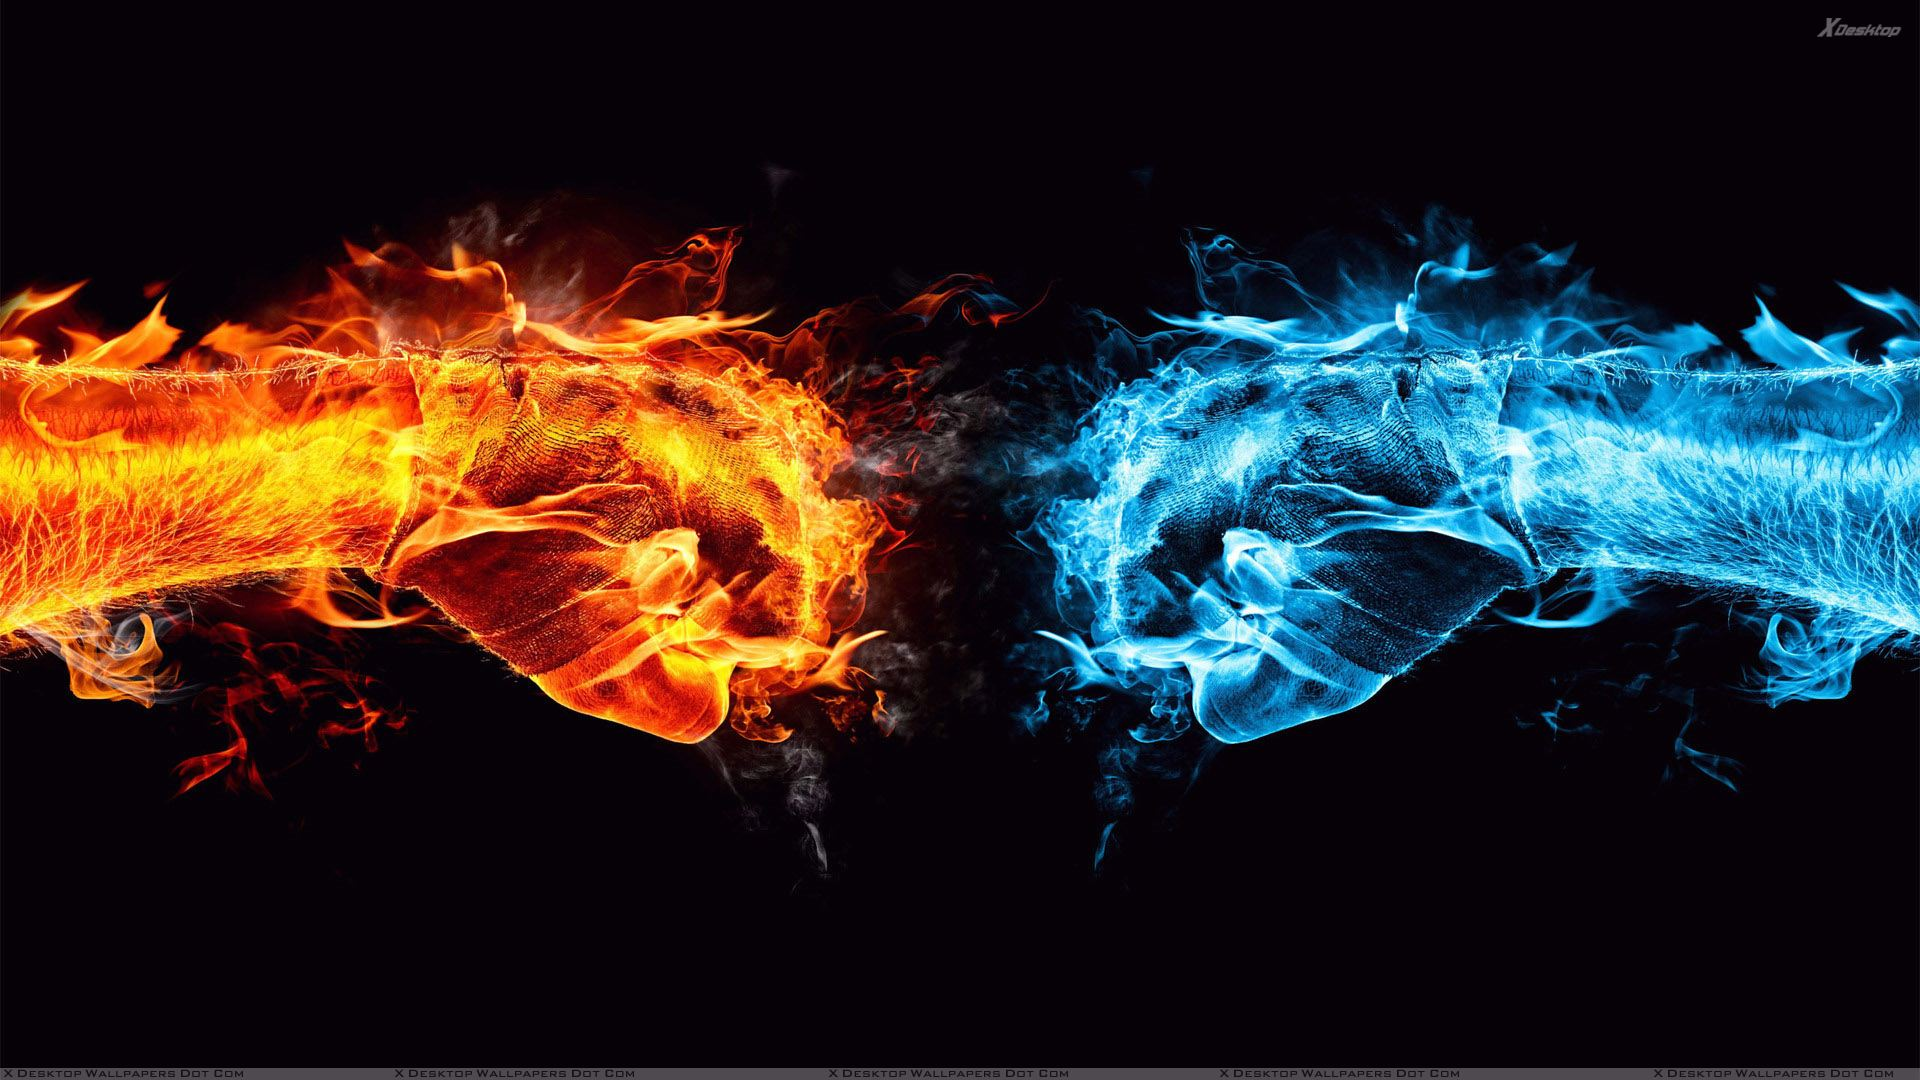 Song Of Ice And Fire Wallpaper - WallpaperSafari